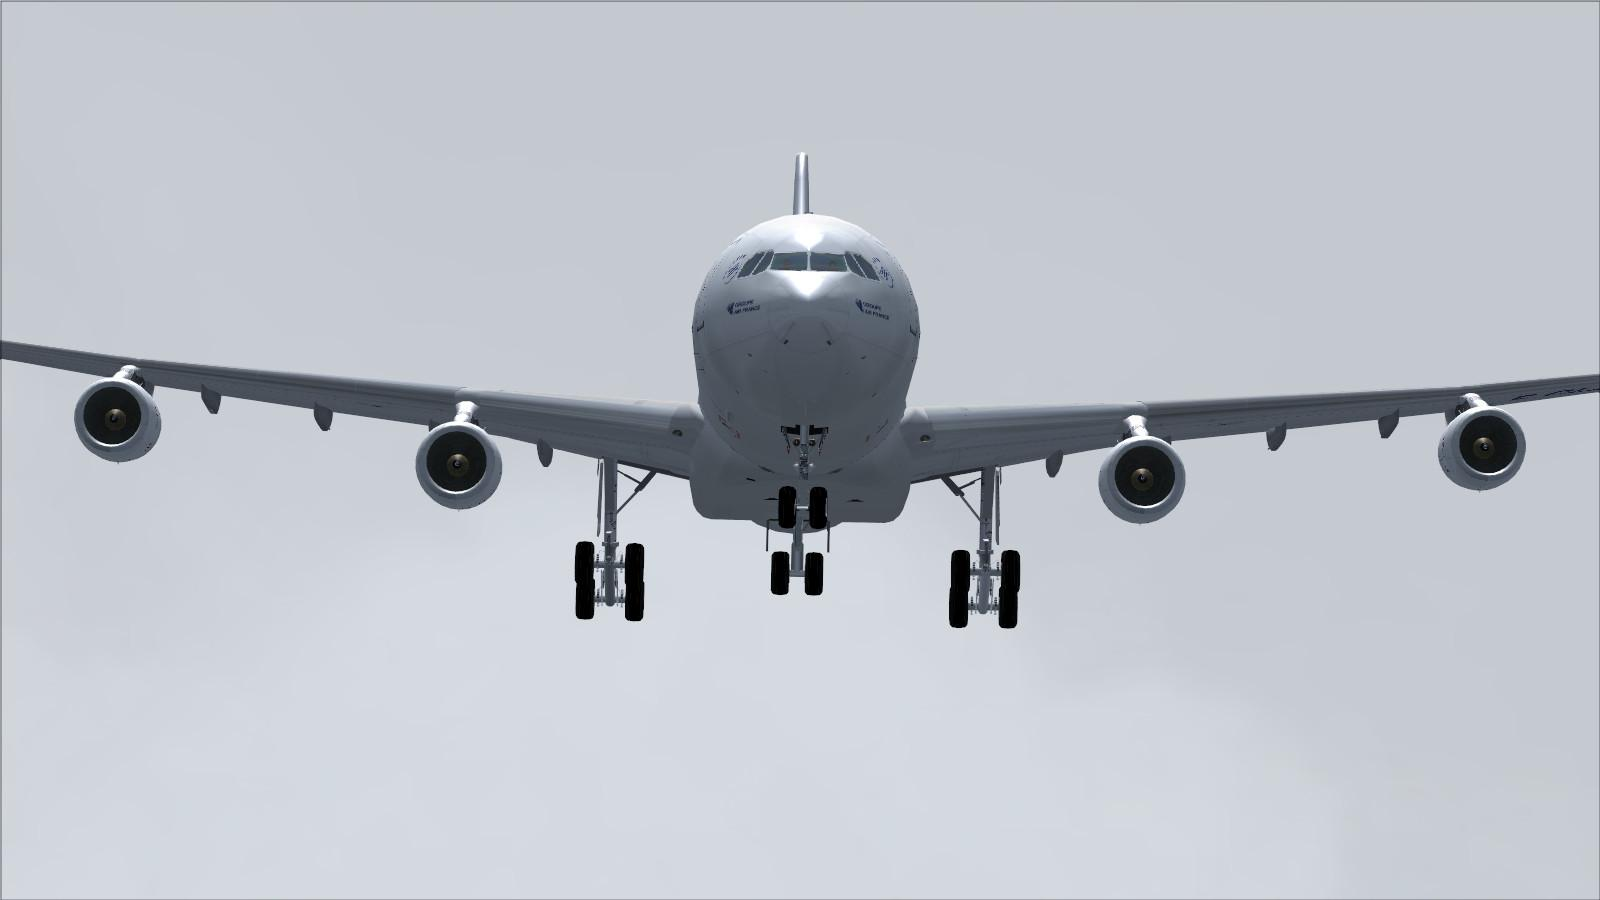 Fsx airbus a340 free download